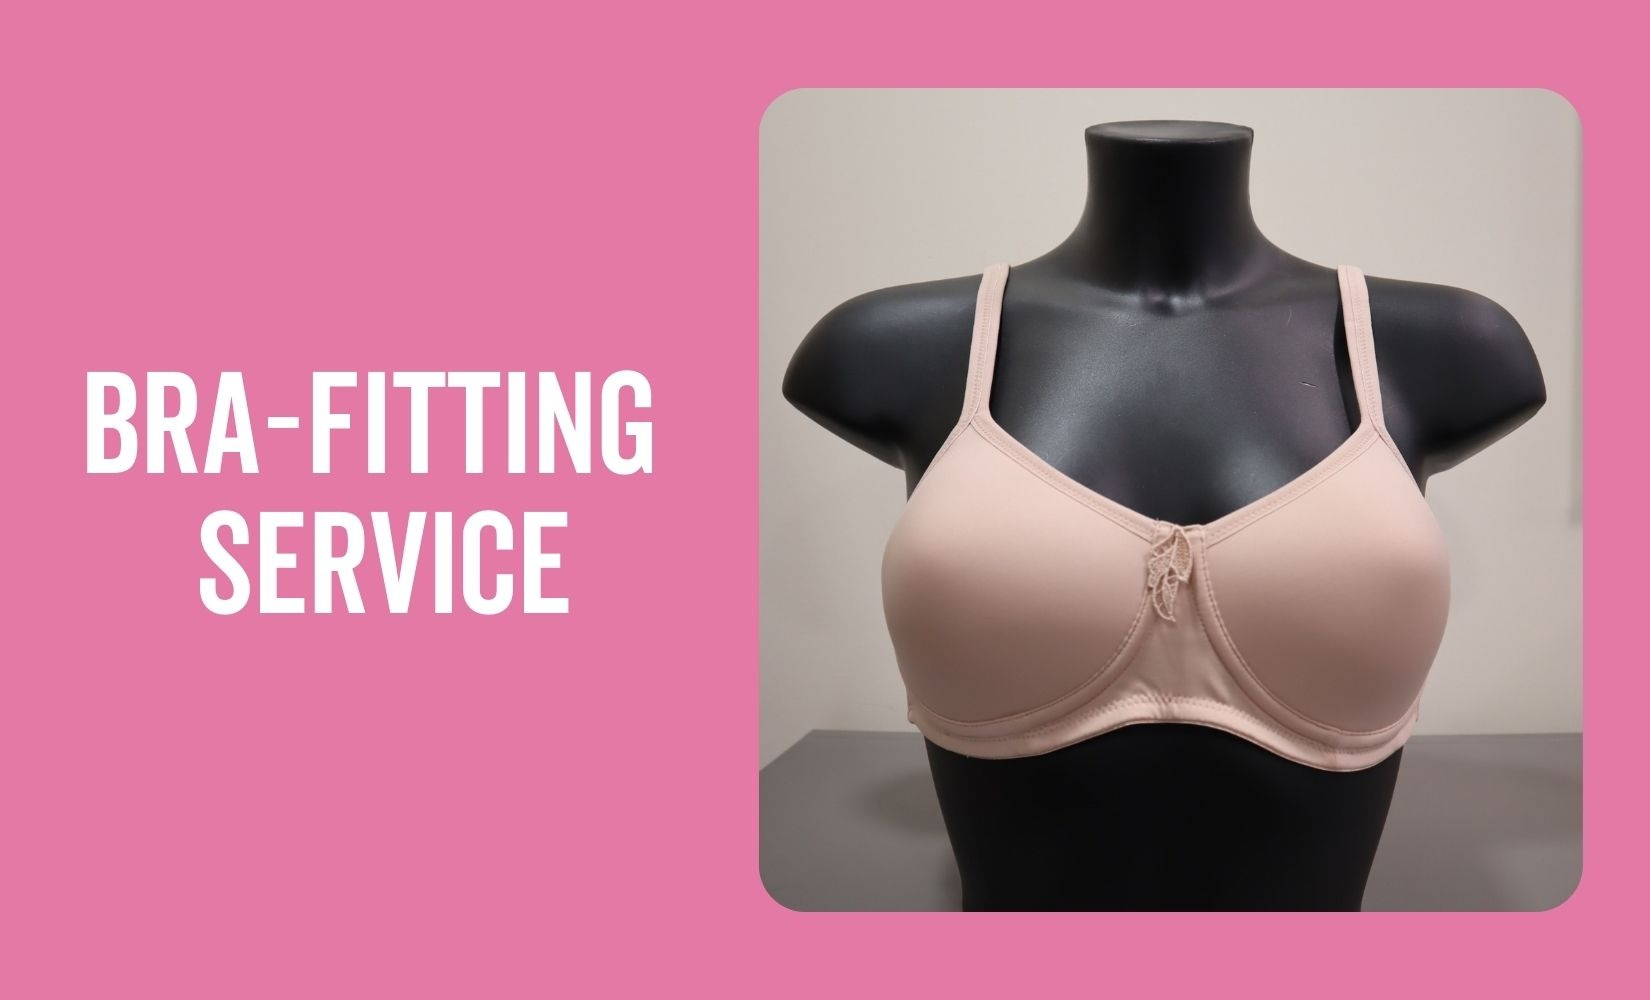 Bra-Fitting Service for breast cancer patients